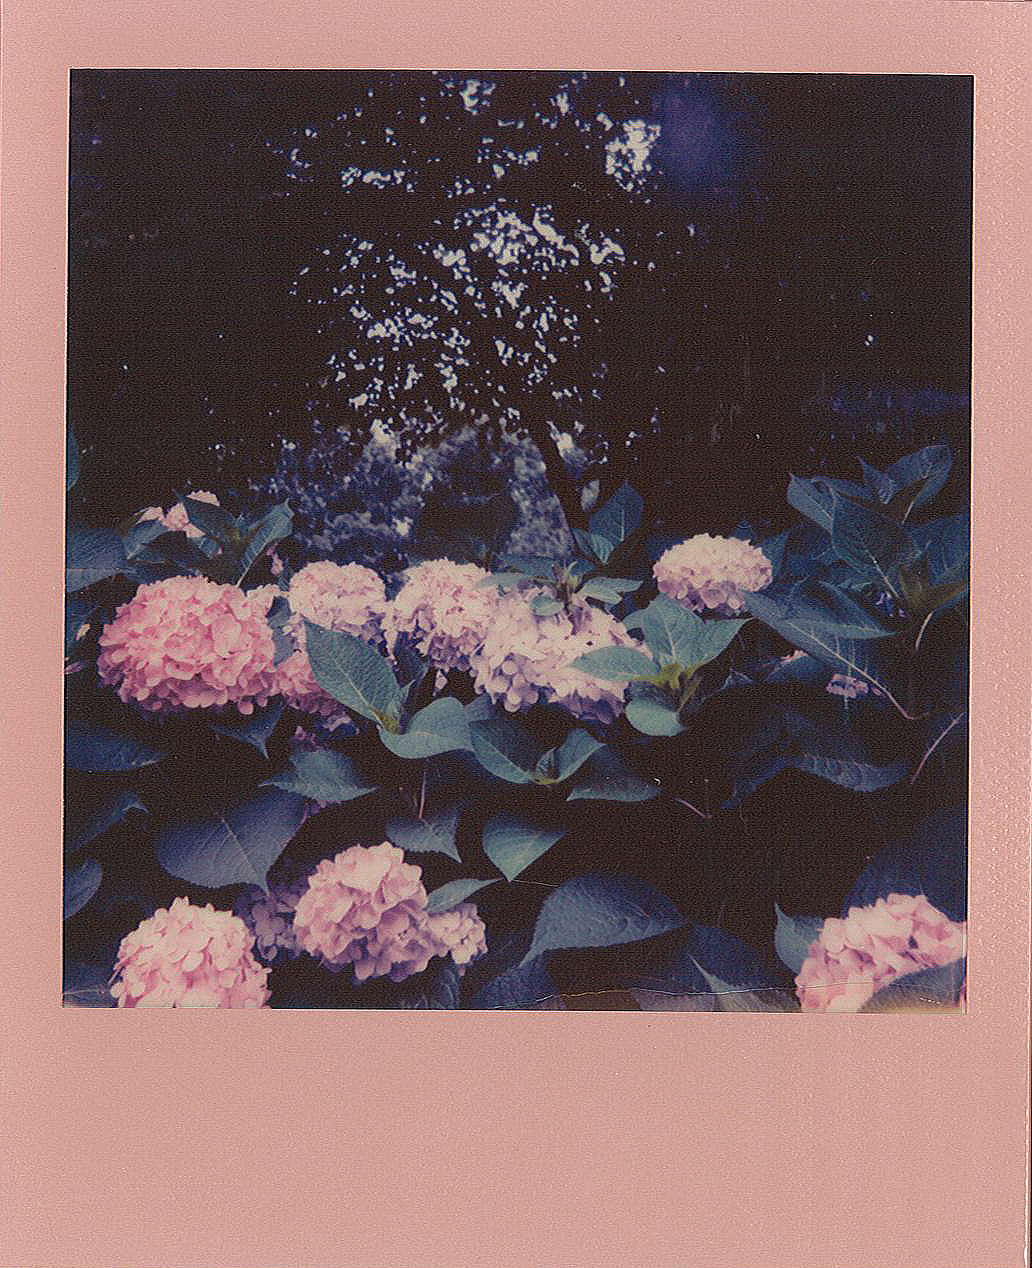 Polaroid I-type